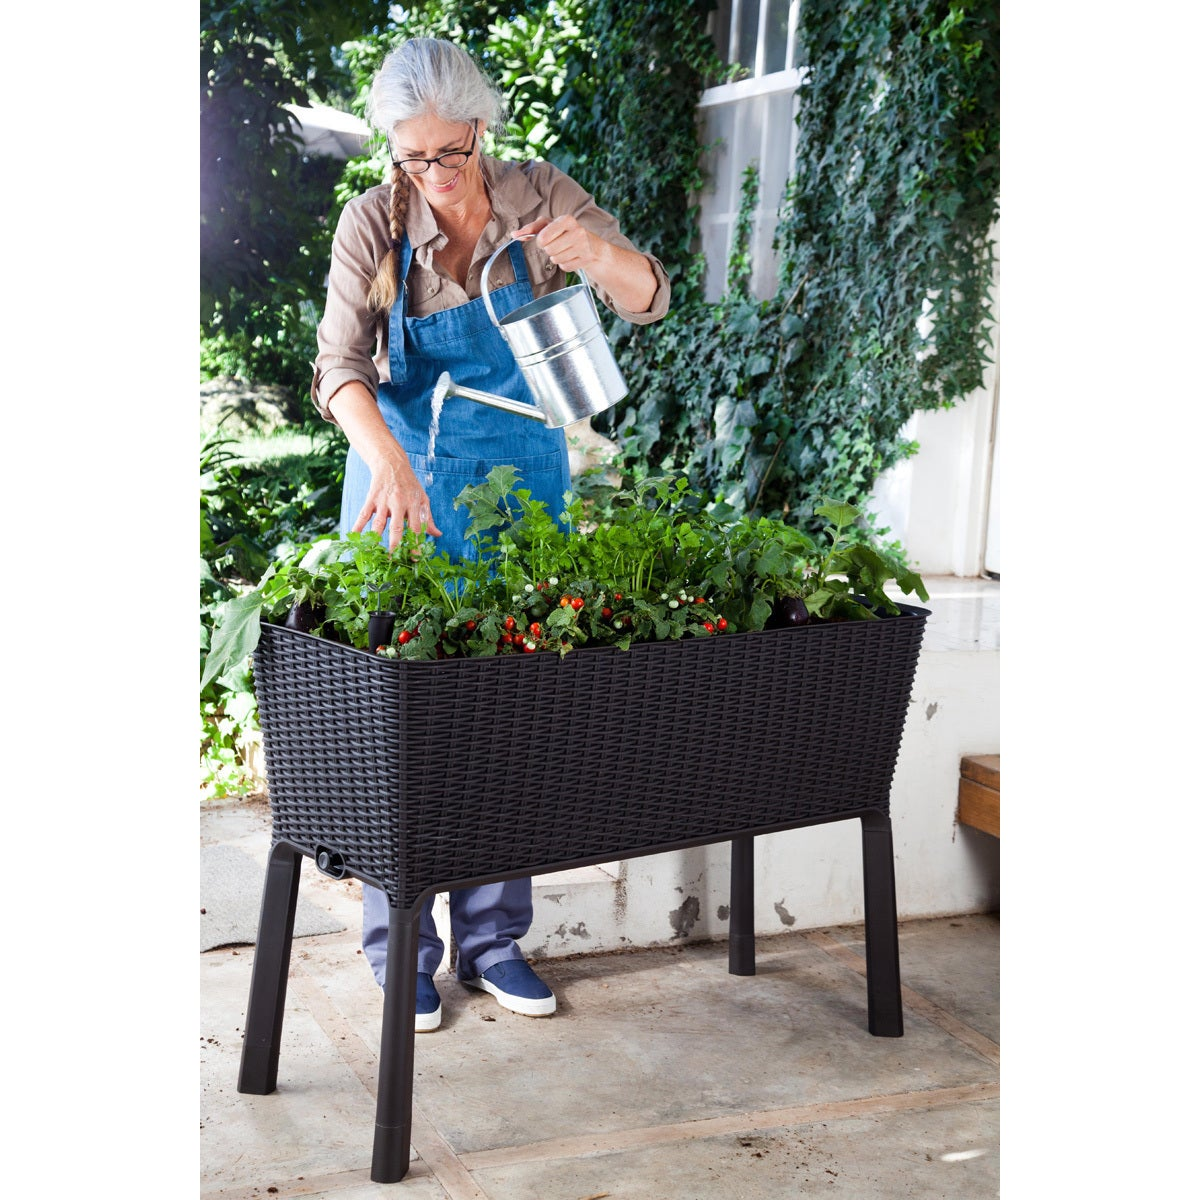 Shop Keter Easy Grow Patio Flower Plant Planter Raised Elevated Garden Bed    Free Shipping Today   Overstock.com   12046938